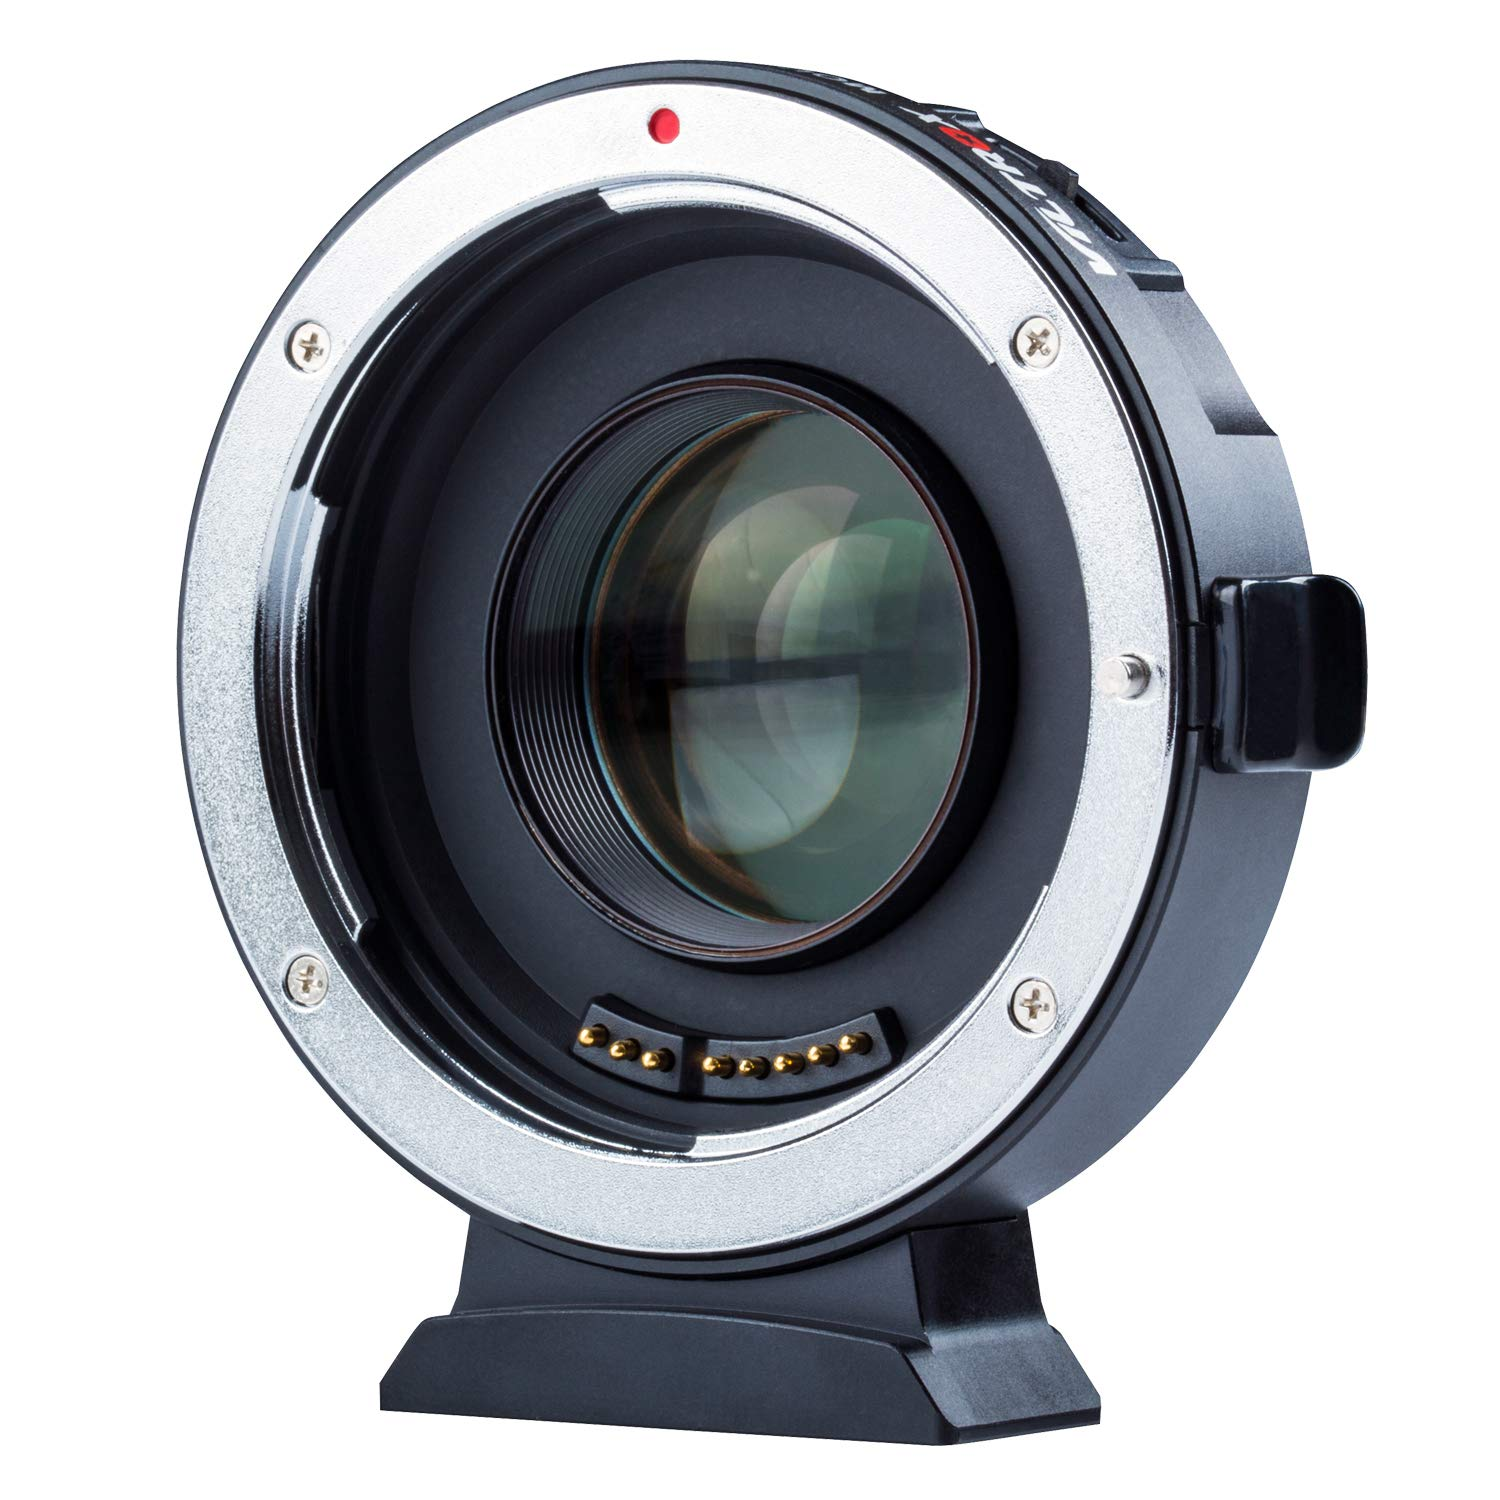 VILTROX EF-M2 Electronic AF Auto Focus 0.71x Focal Reducer Speed Booster Lens Mount Adapter for Canon EF Mount Lens to M4/3 camera GH5 GH4 GF1 GX85 E-M5 E-M10 E-M10II E-PL3 PEN-F